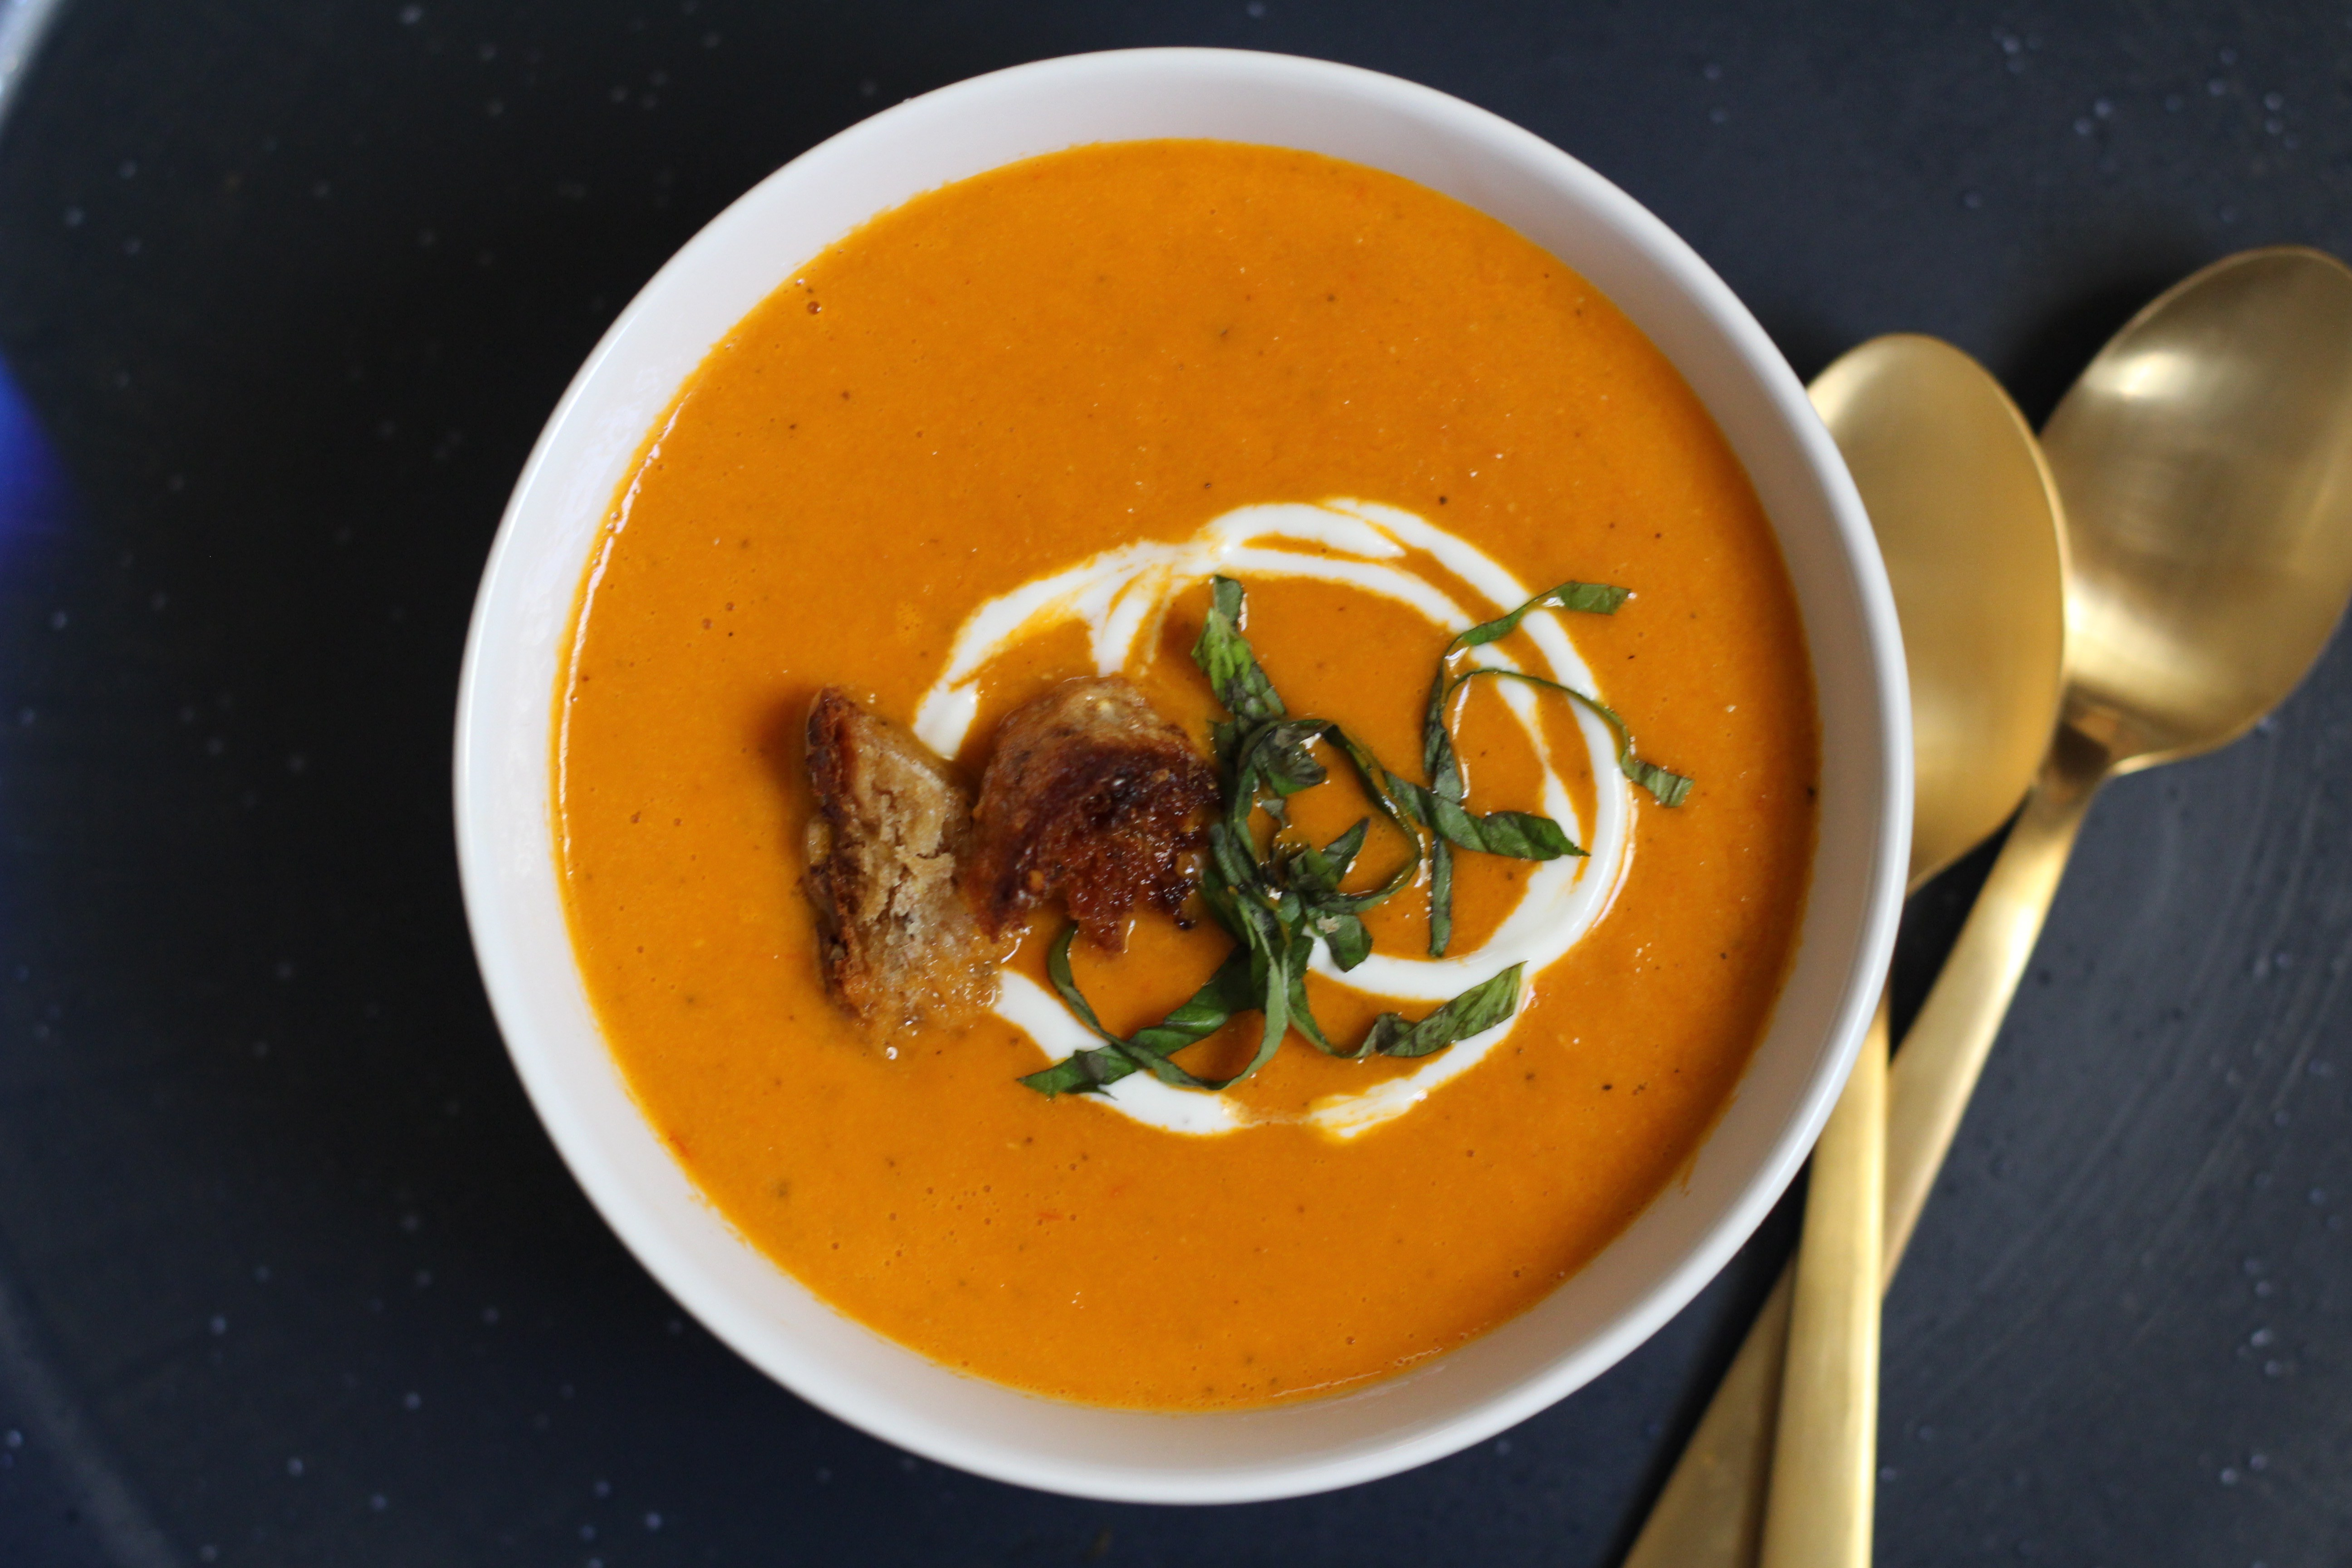 Cool Mom Eats weekly meal plan: Homemade Tomato Soup (perfect for pairing with a dinner-worthy grilled cheese sandwich!) at Amanda's Plate